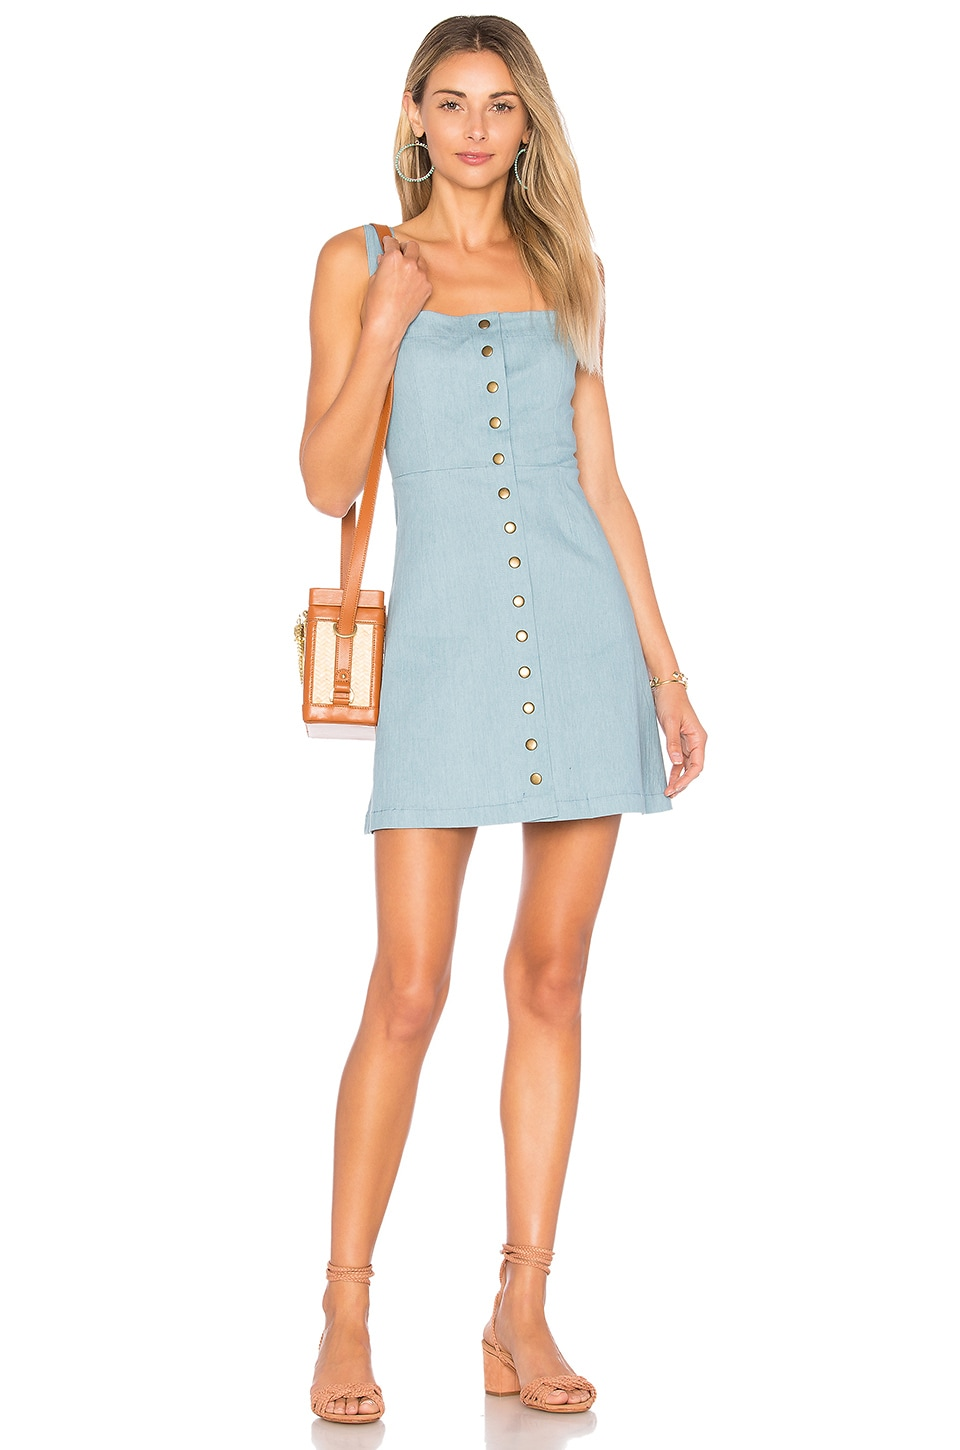 Clayton Denim Angie Dress in Sunfade Denim